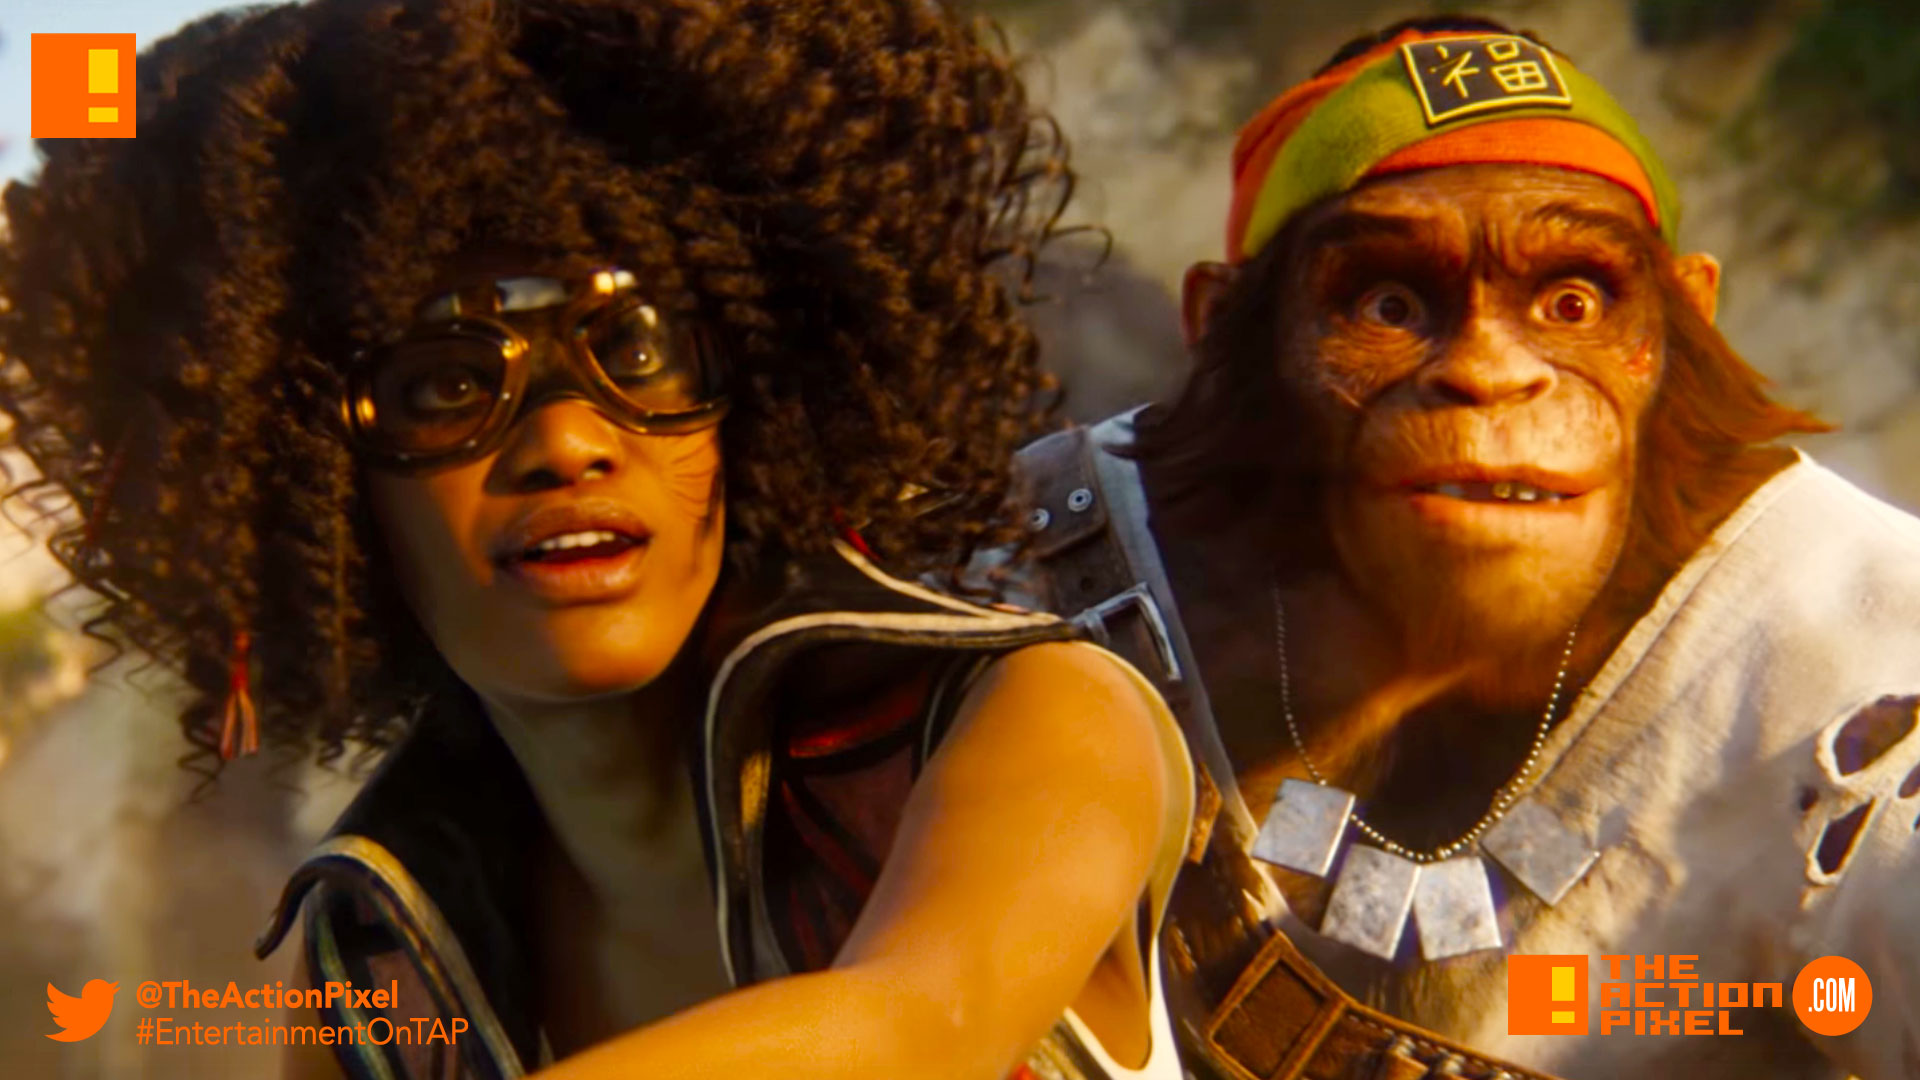 beyond good and evil 2, Beyond Good and Evil 2, E3 2017,,Announcement Trailer